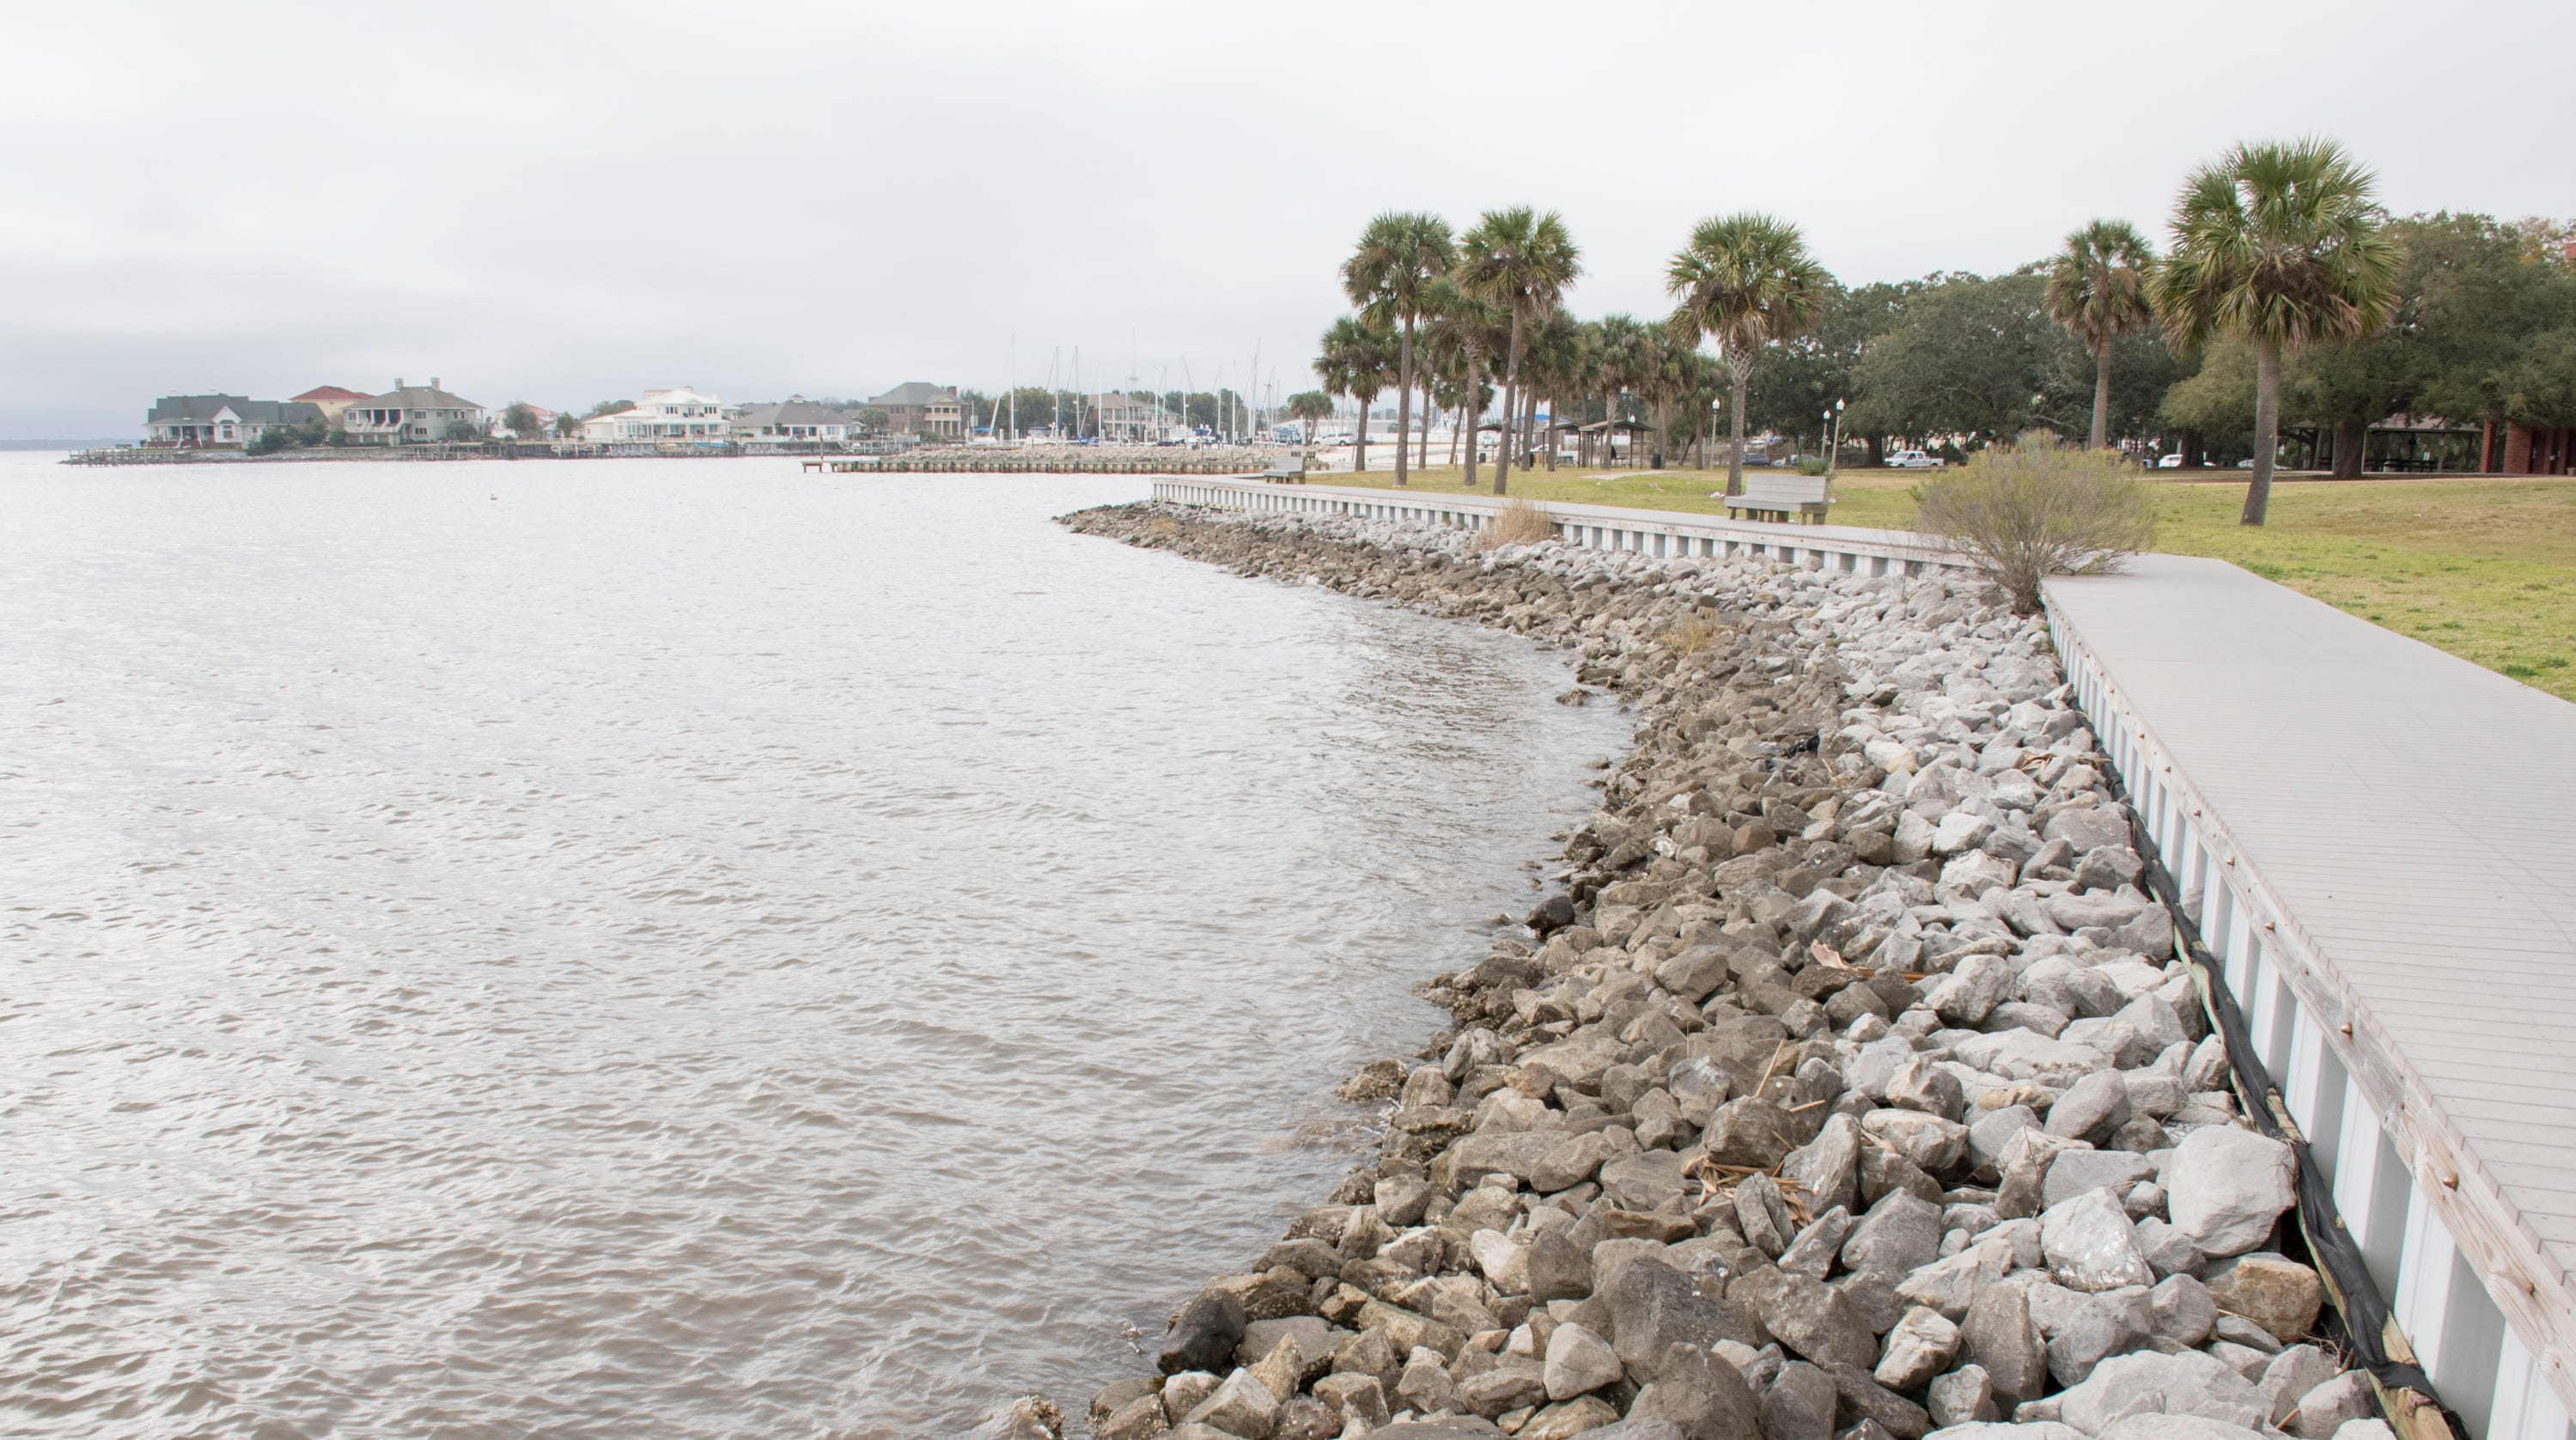 """SCAPE representative are developing a """"waterfront framework plan"""" that stretches from the Pensacola Bay Bridge to the Pensacola Yacht Club"""